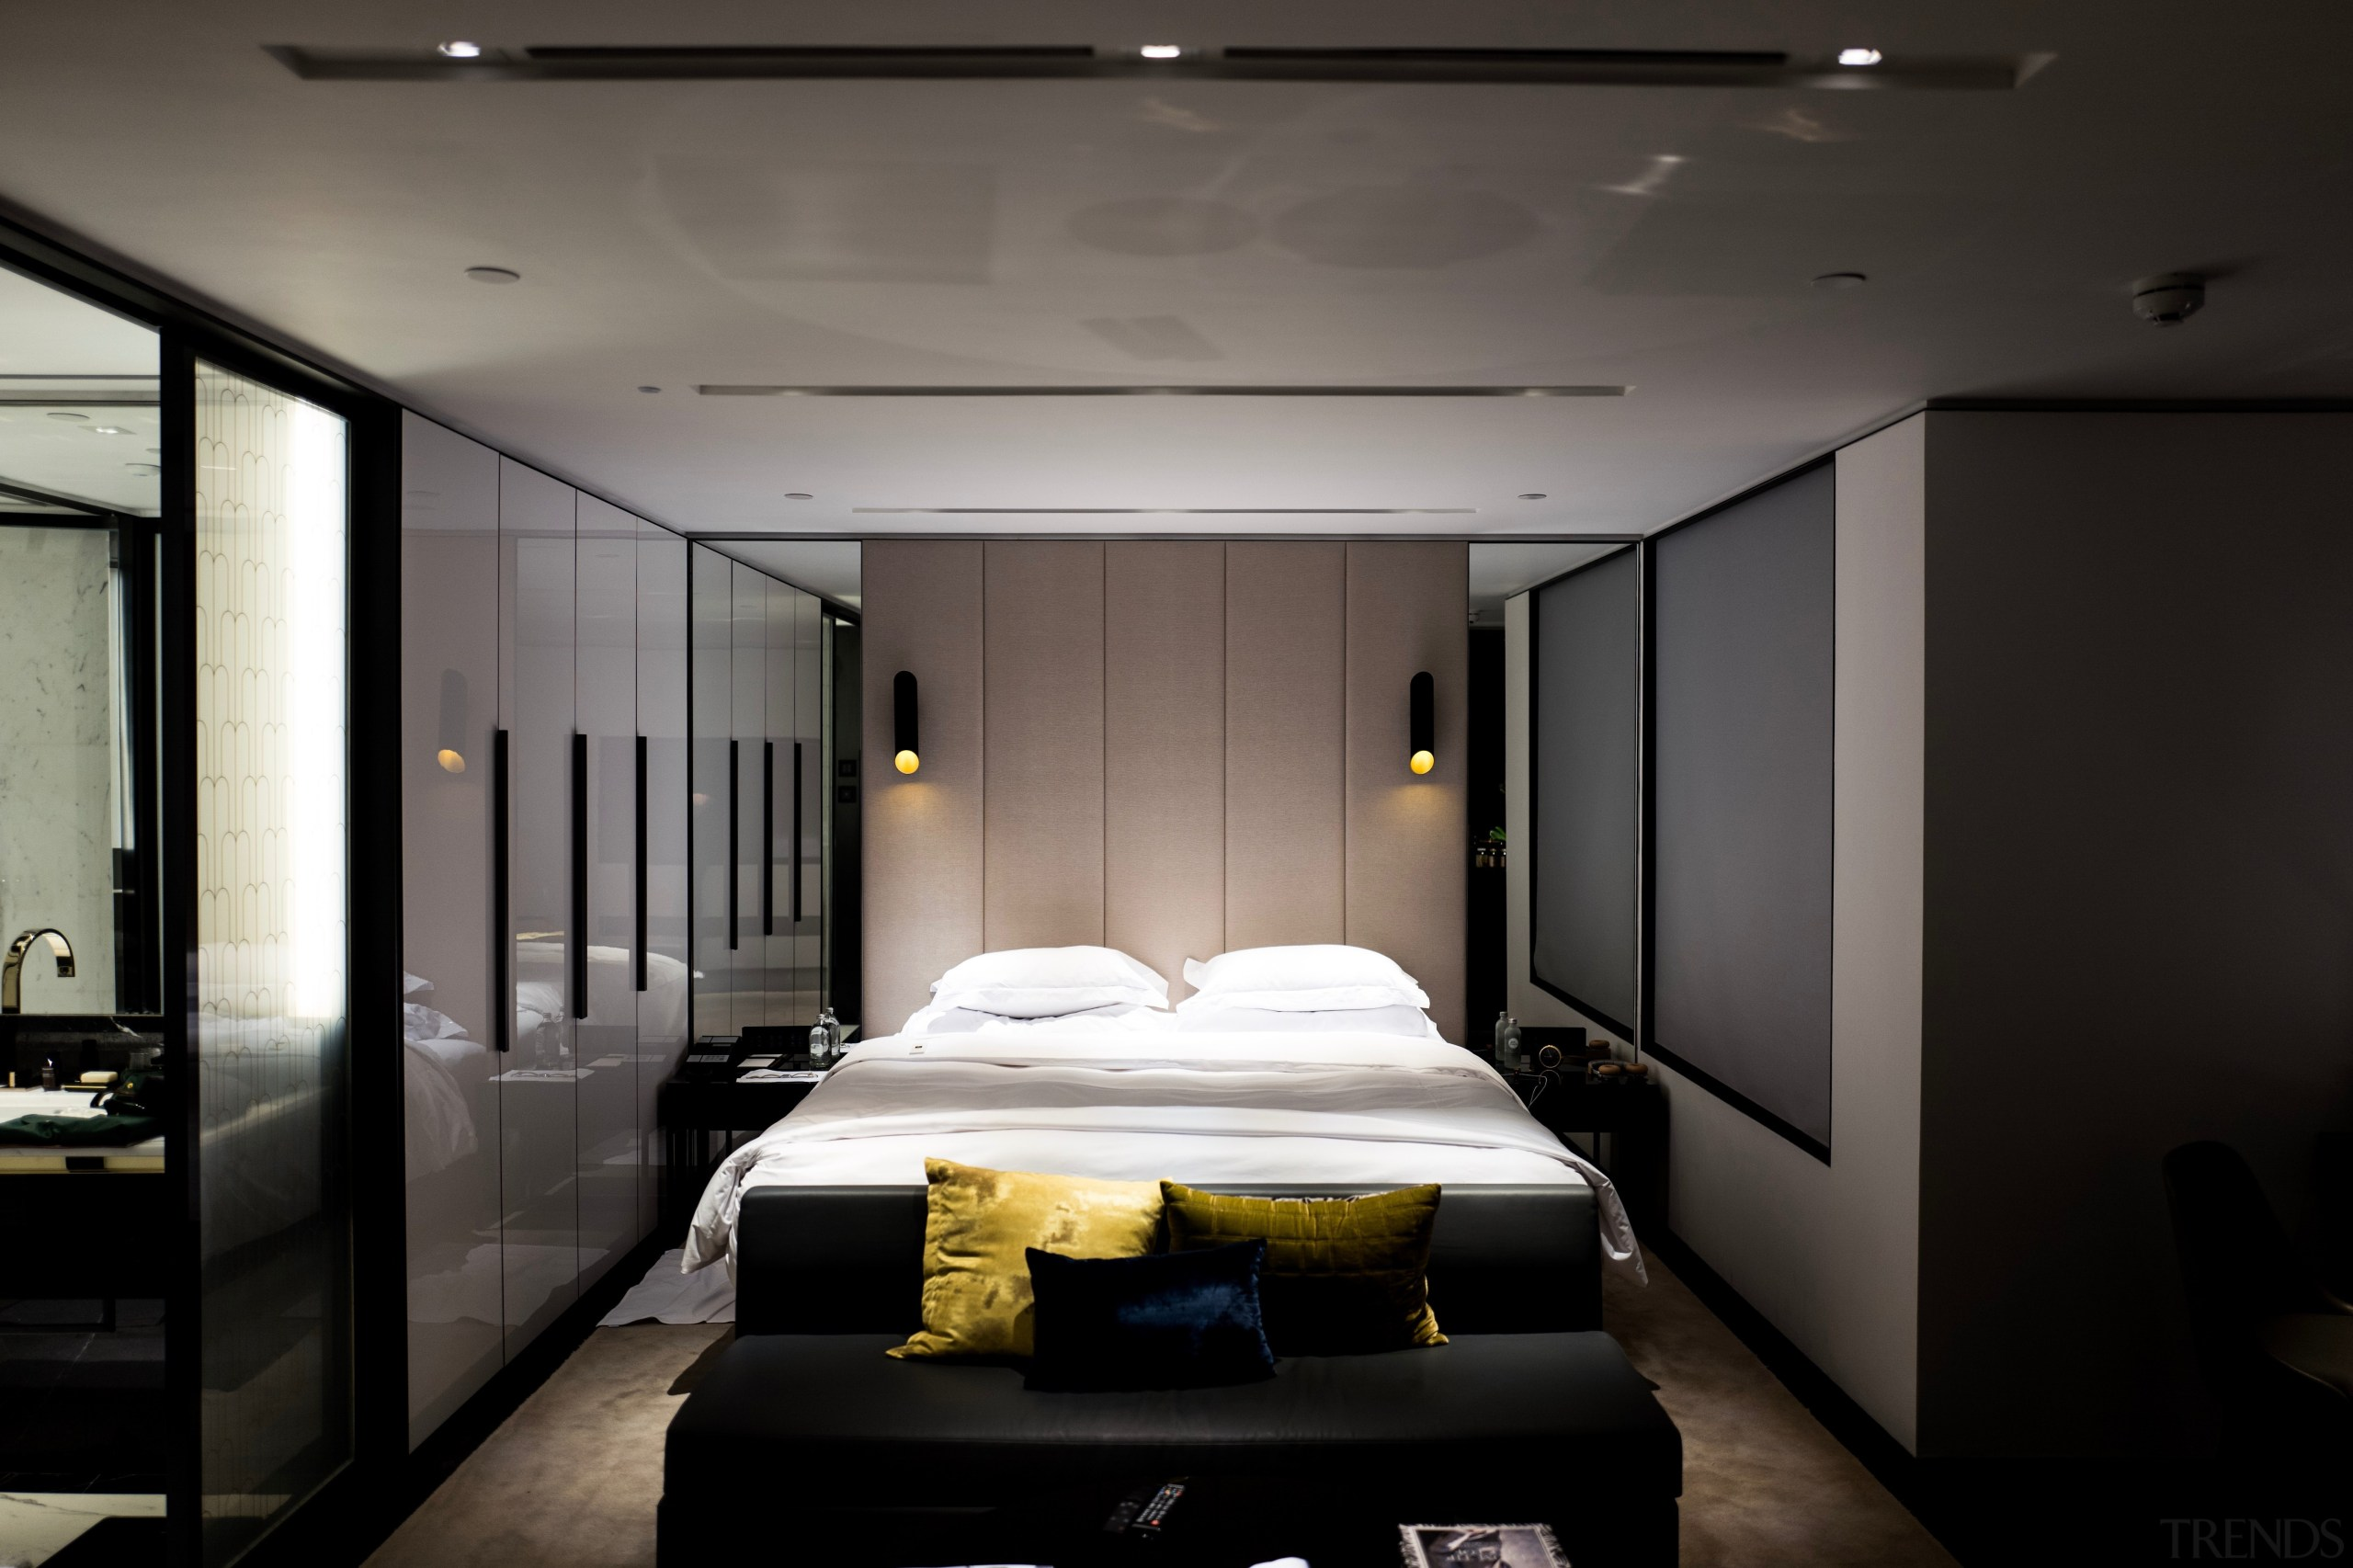 While going all grey is bang on trend, architecture, bed, bed frame, bedroom, boutique hotel, building, ceiling, floor, furniture, house, interior design, lighting, mattress, property, room, suite, black, gray